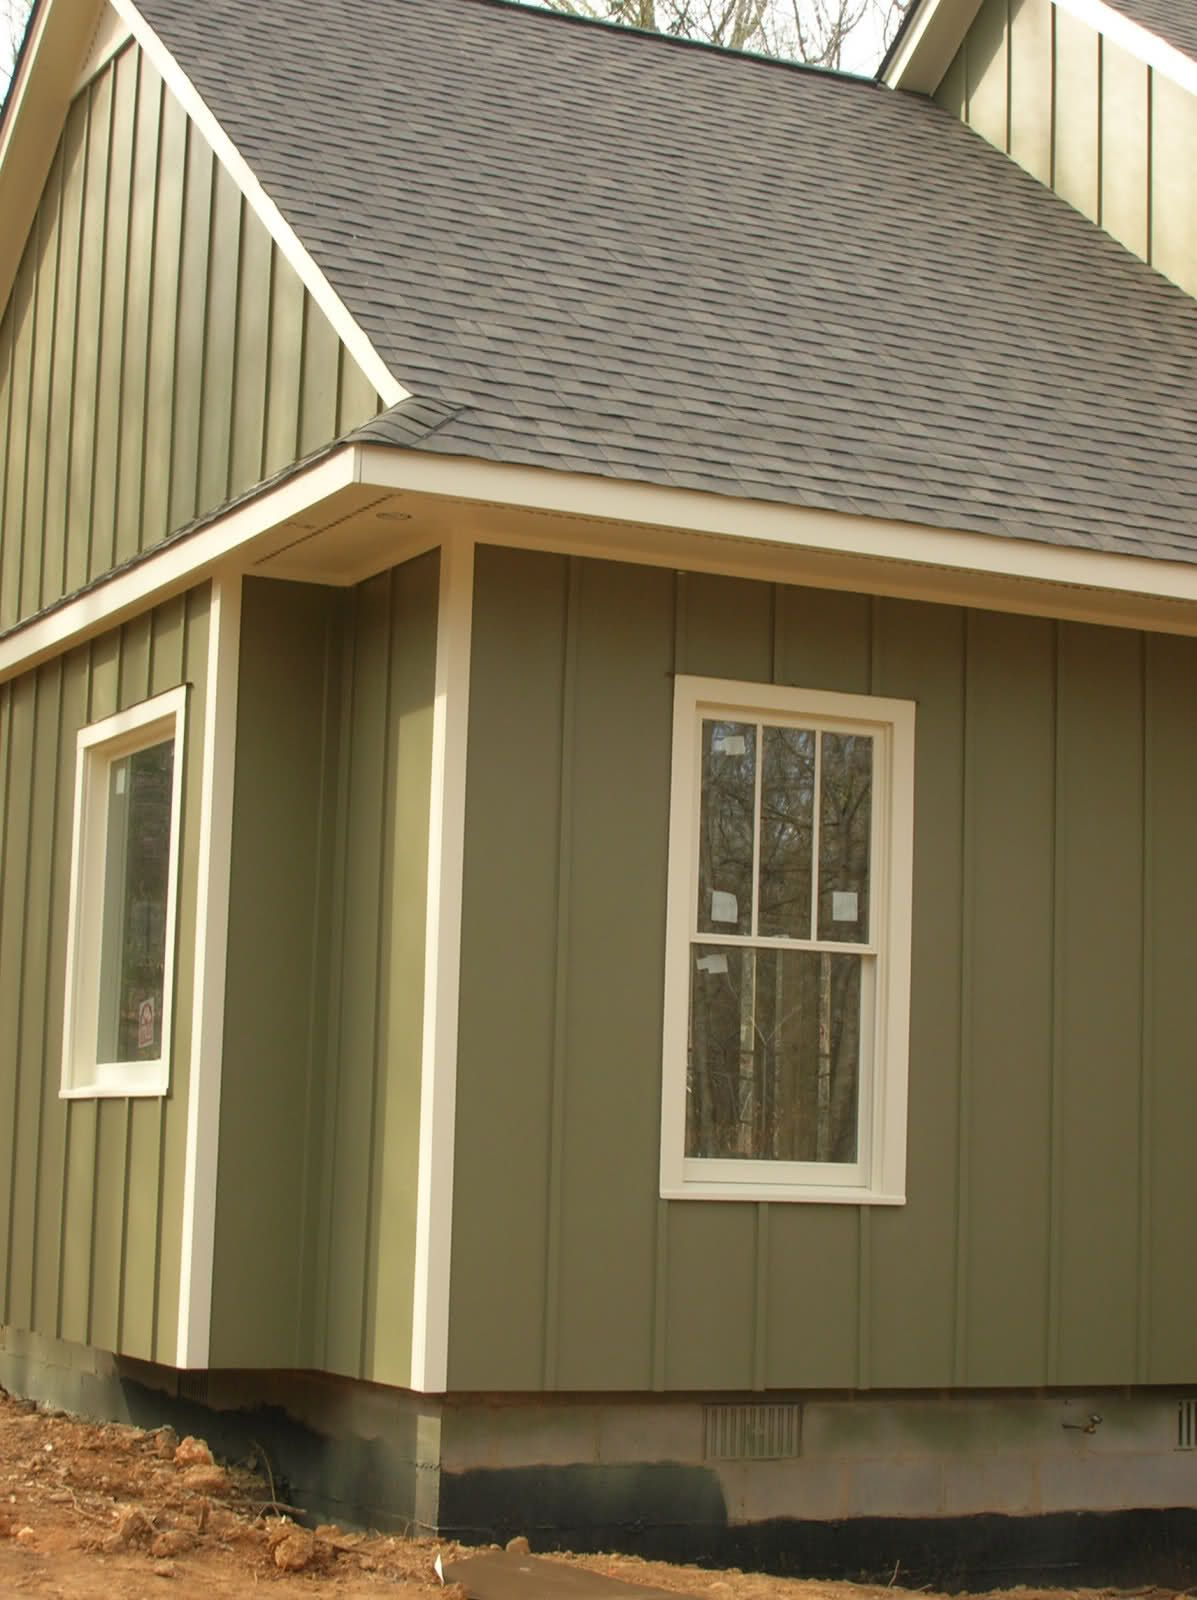 Board and batten siding green board batten siding with for Metal shiplap siding